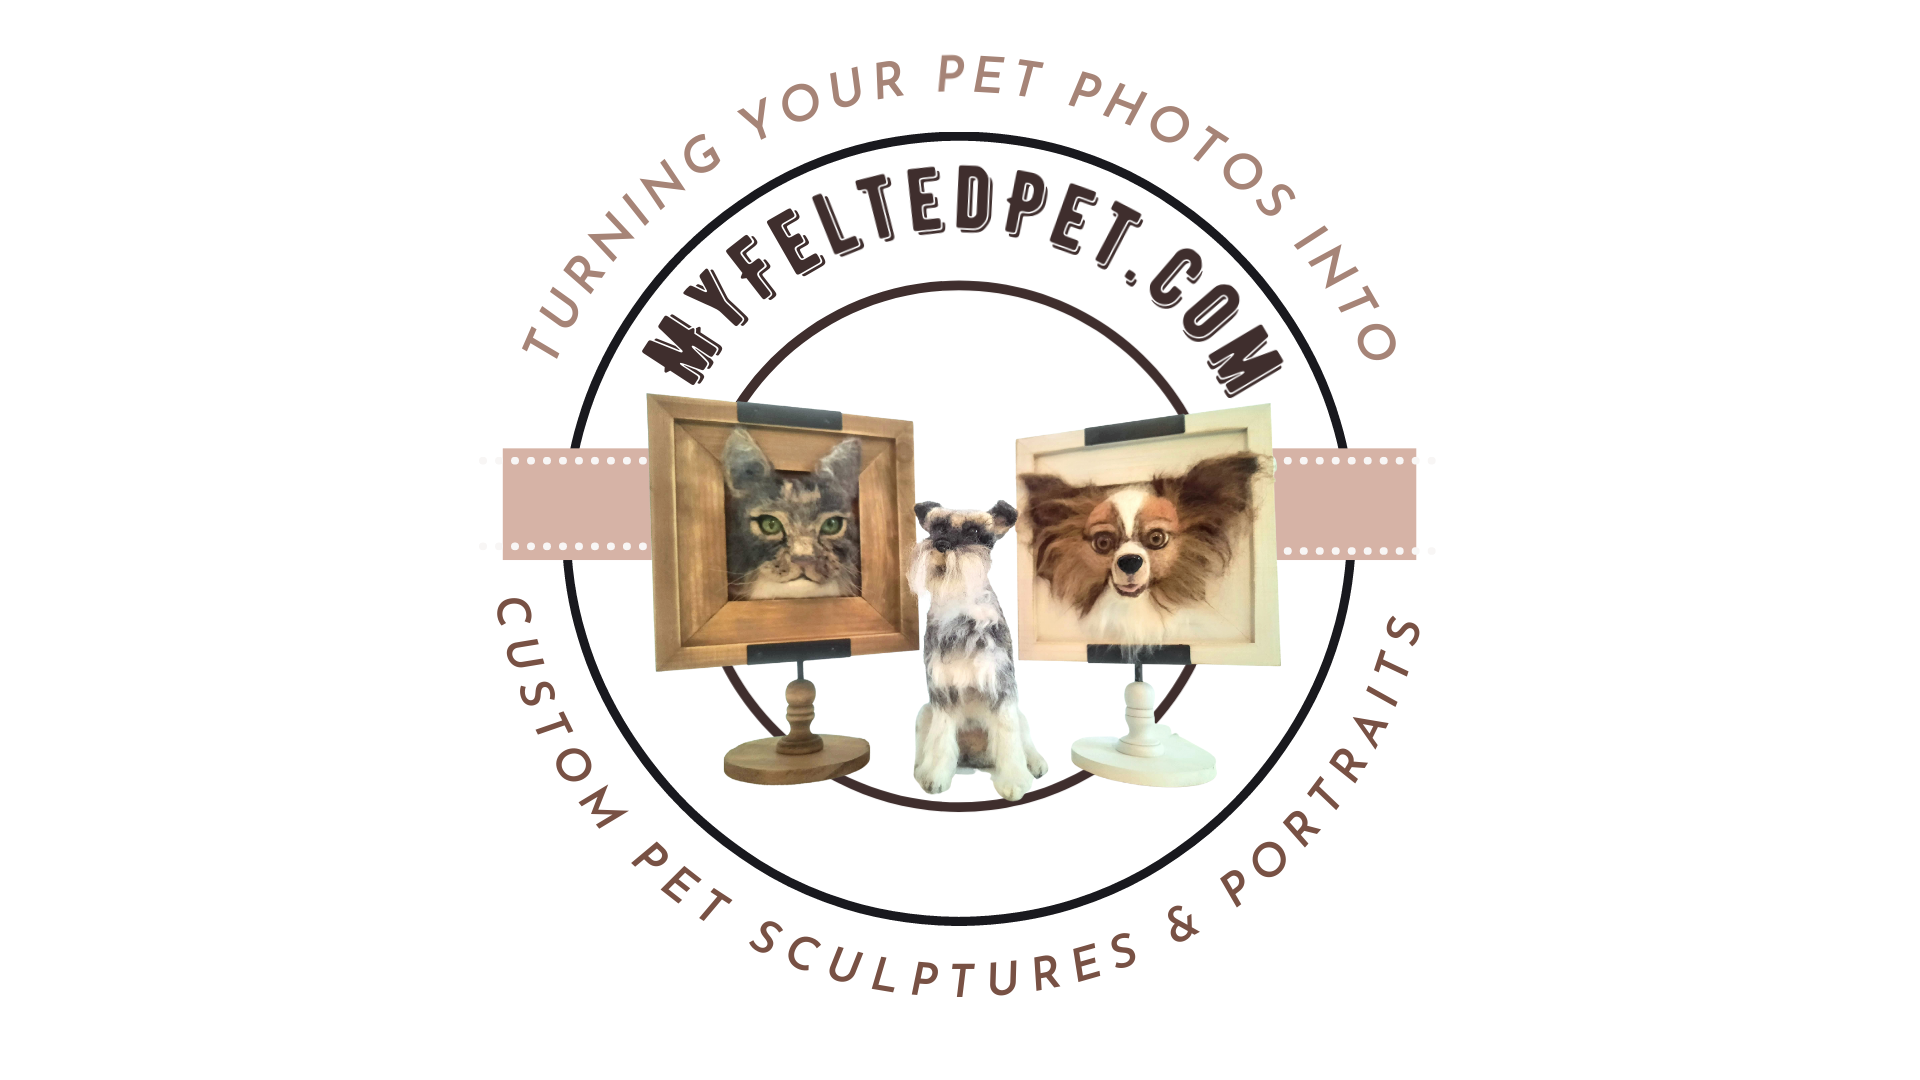 Introducing My Felted Pet, home of needle felted pet portraits and pet sculptures